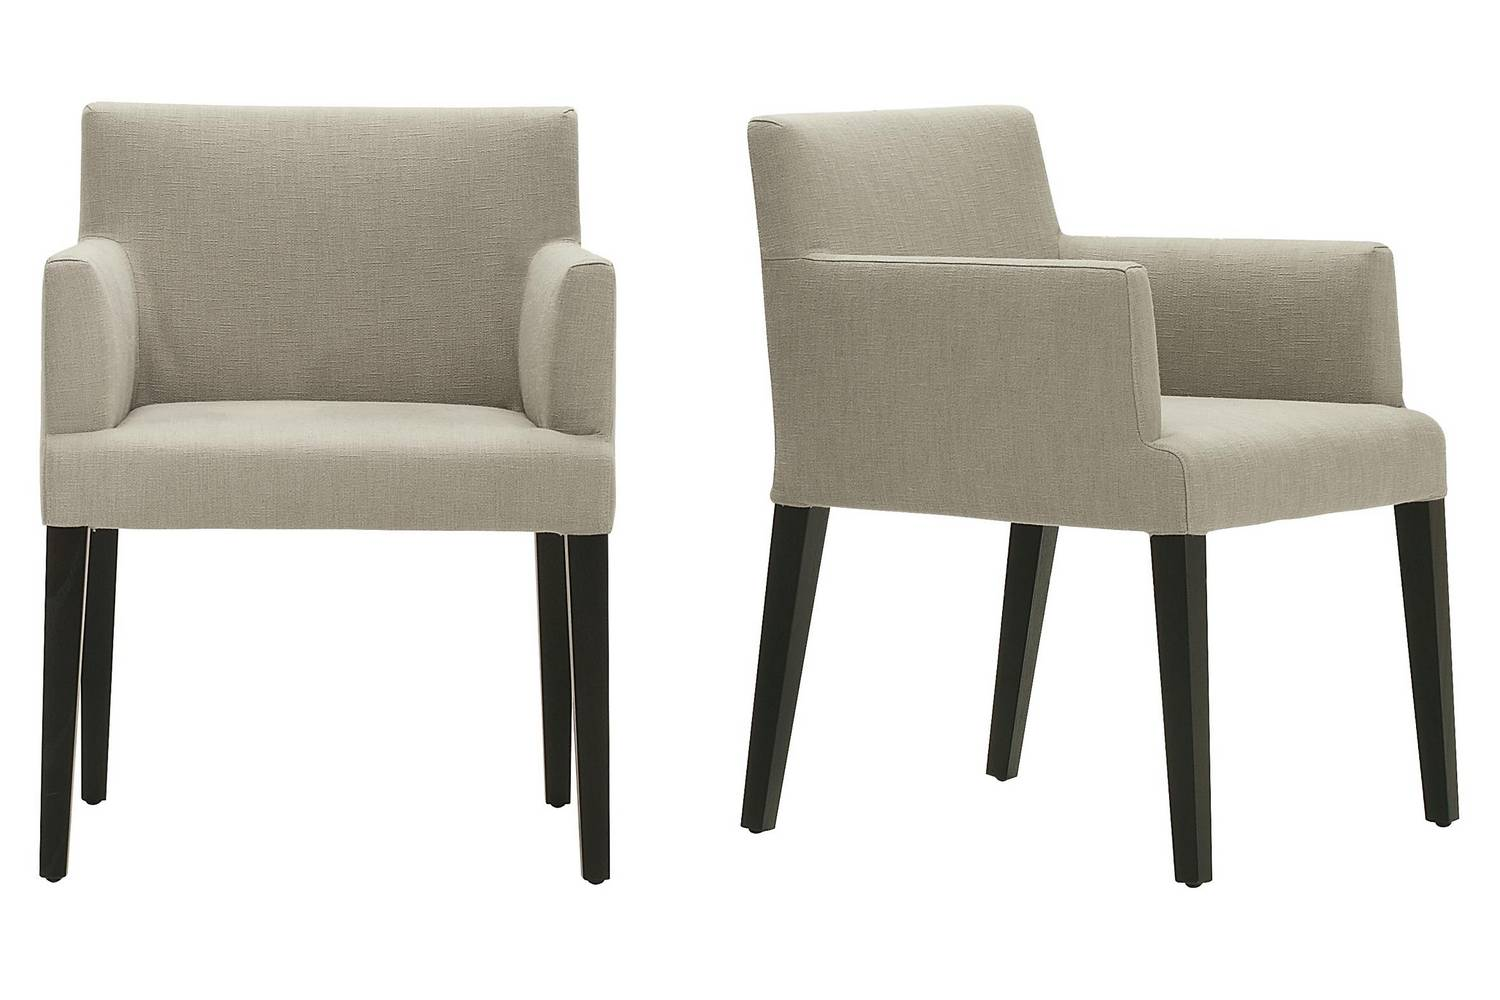 velvet dining chairs australia turquoise wingback chair slipcover with arms by cr ands poliform for